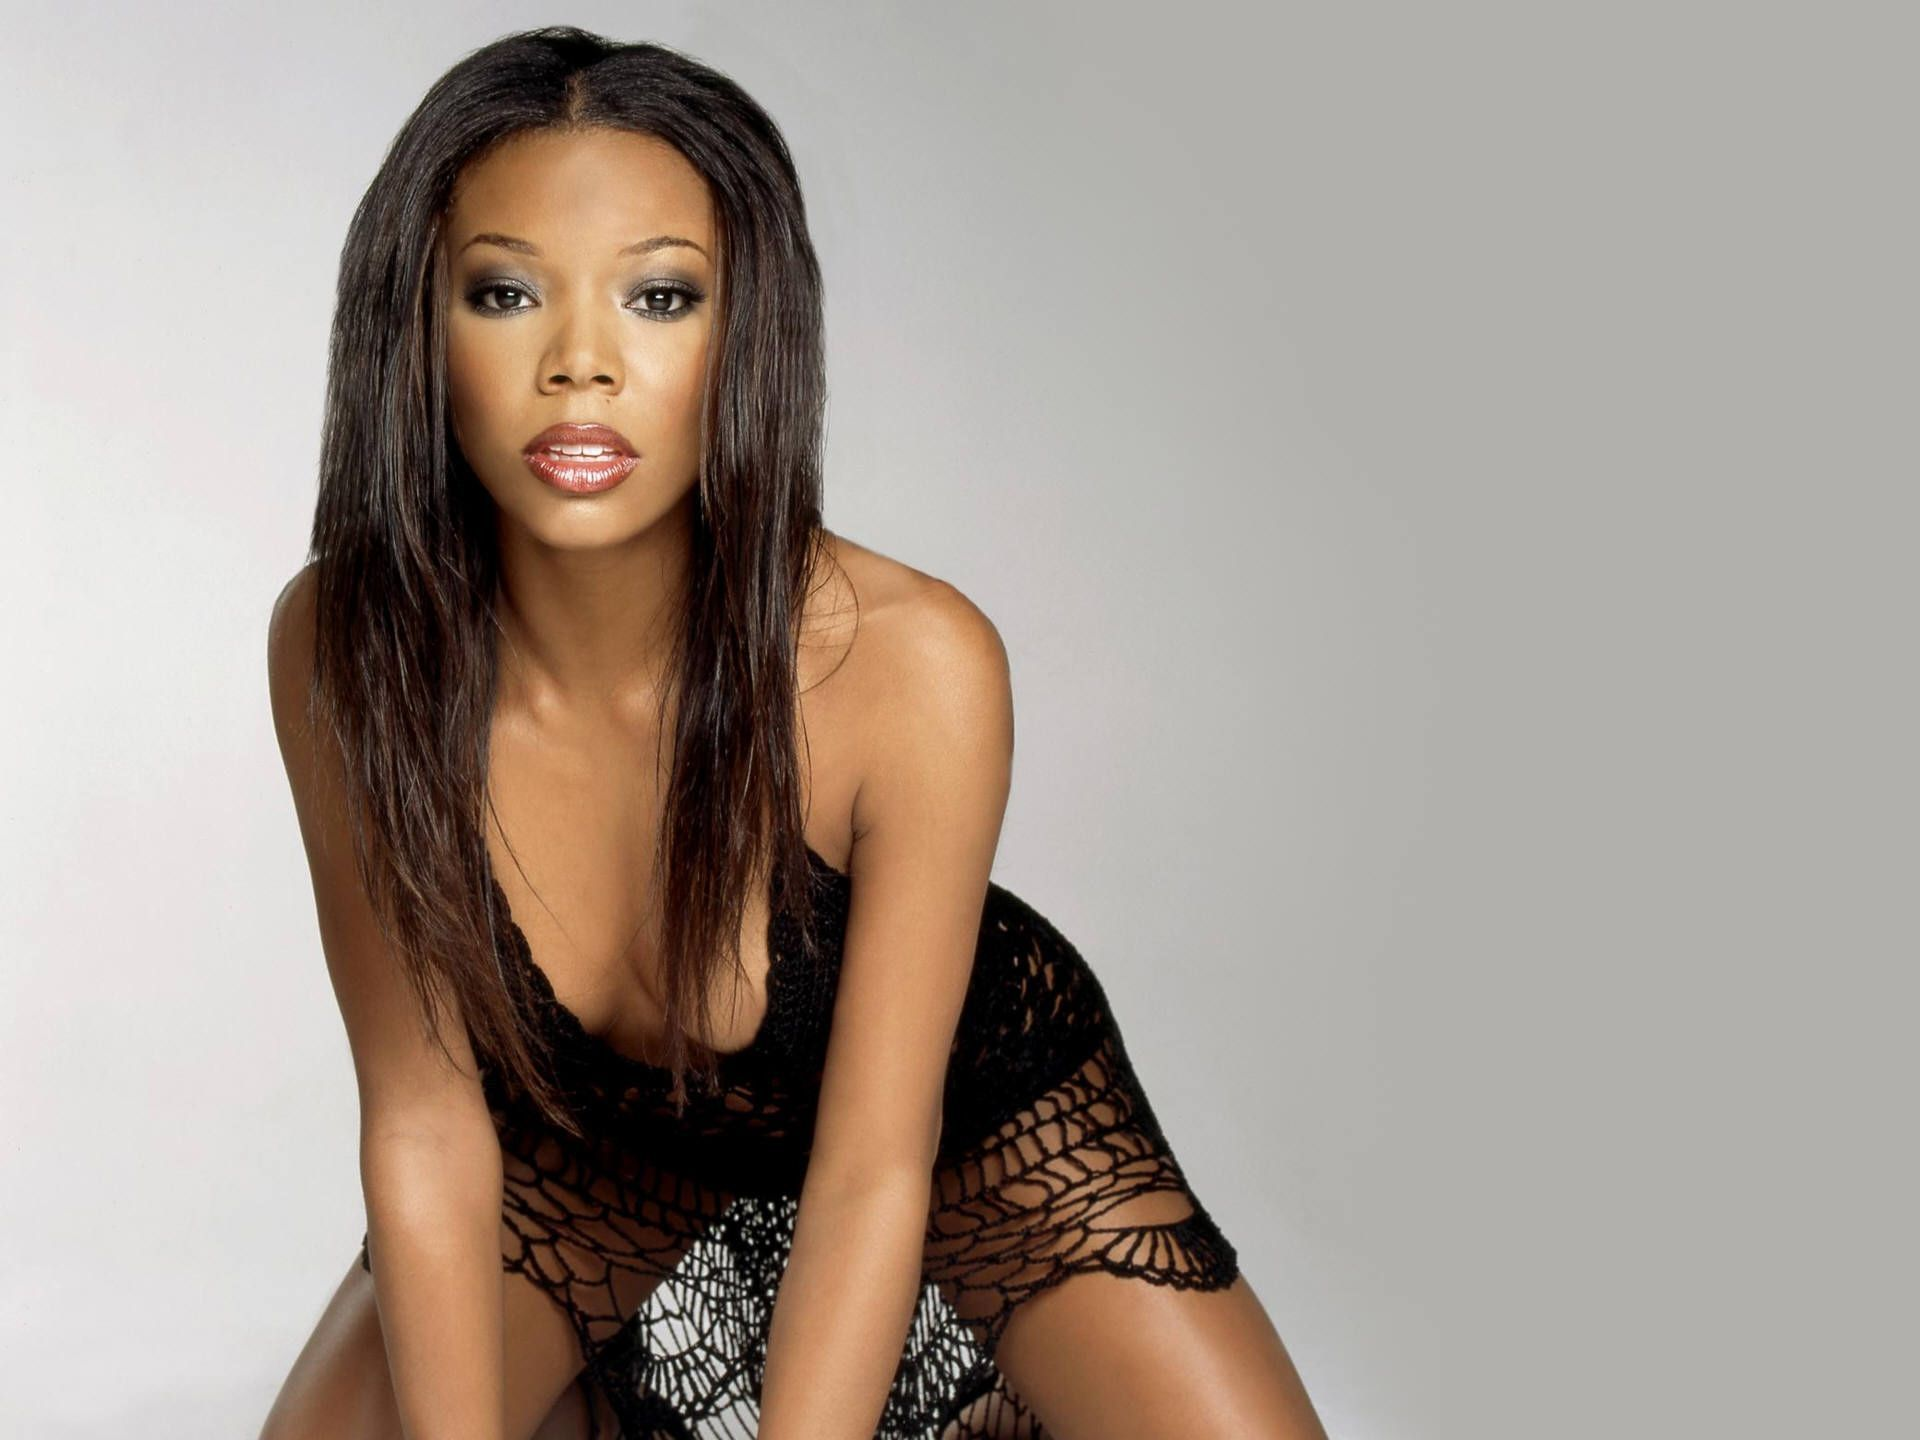 gabrielle union wallpapers images photos pictures backgrounds